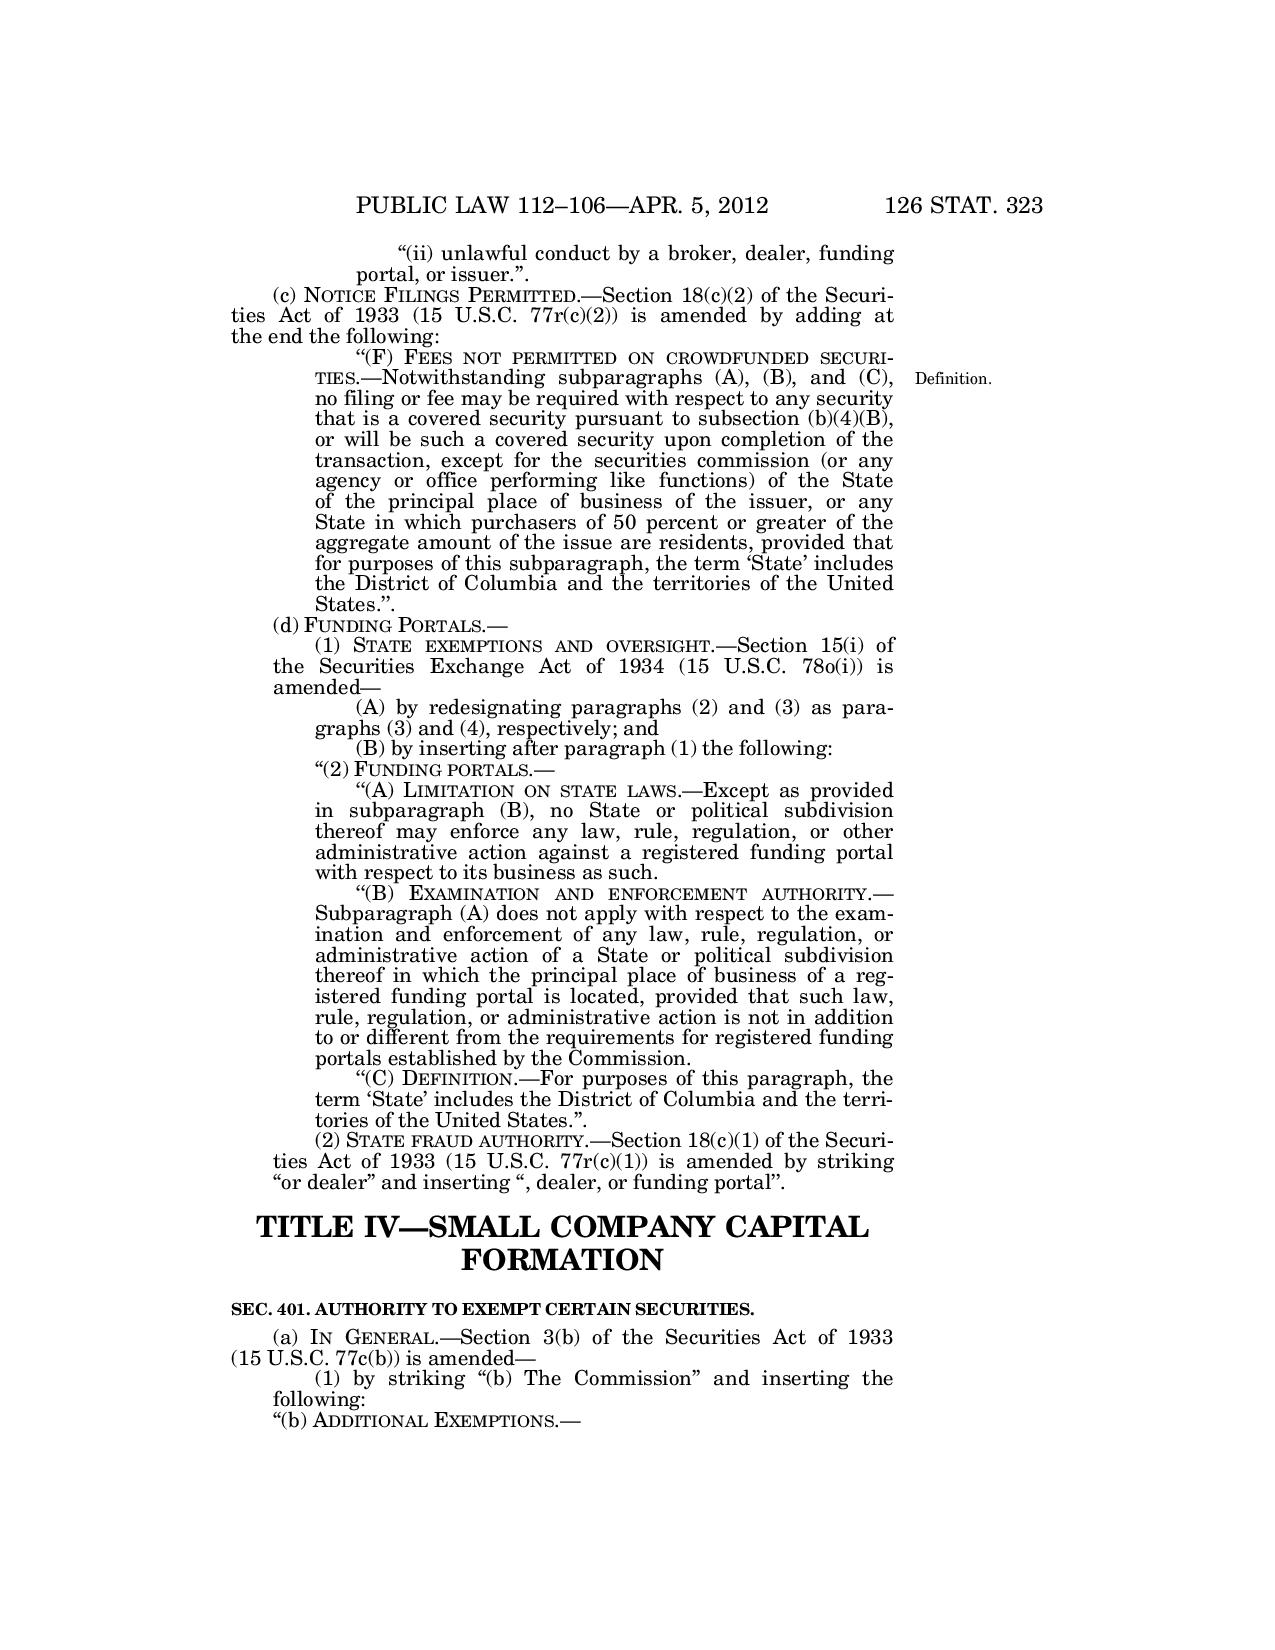 331653864-The-Jumpstart-Our-Business-Startups-Act-JOBS-Act-April-5-of-2012-page-019.jpg